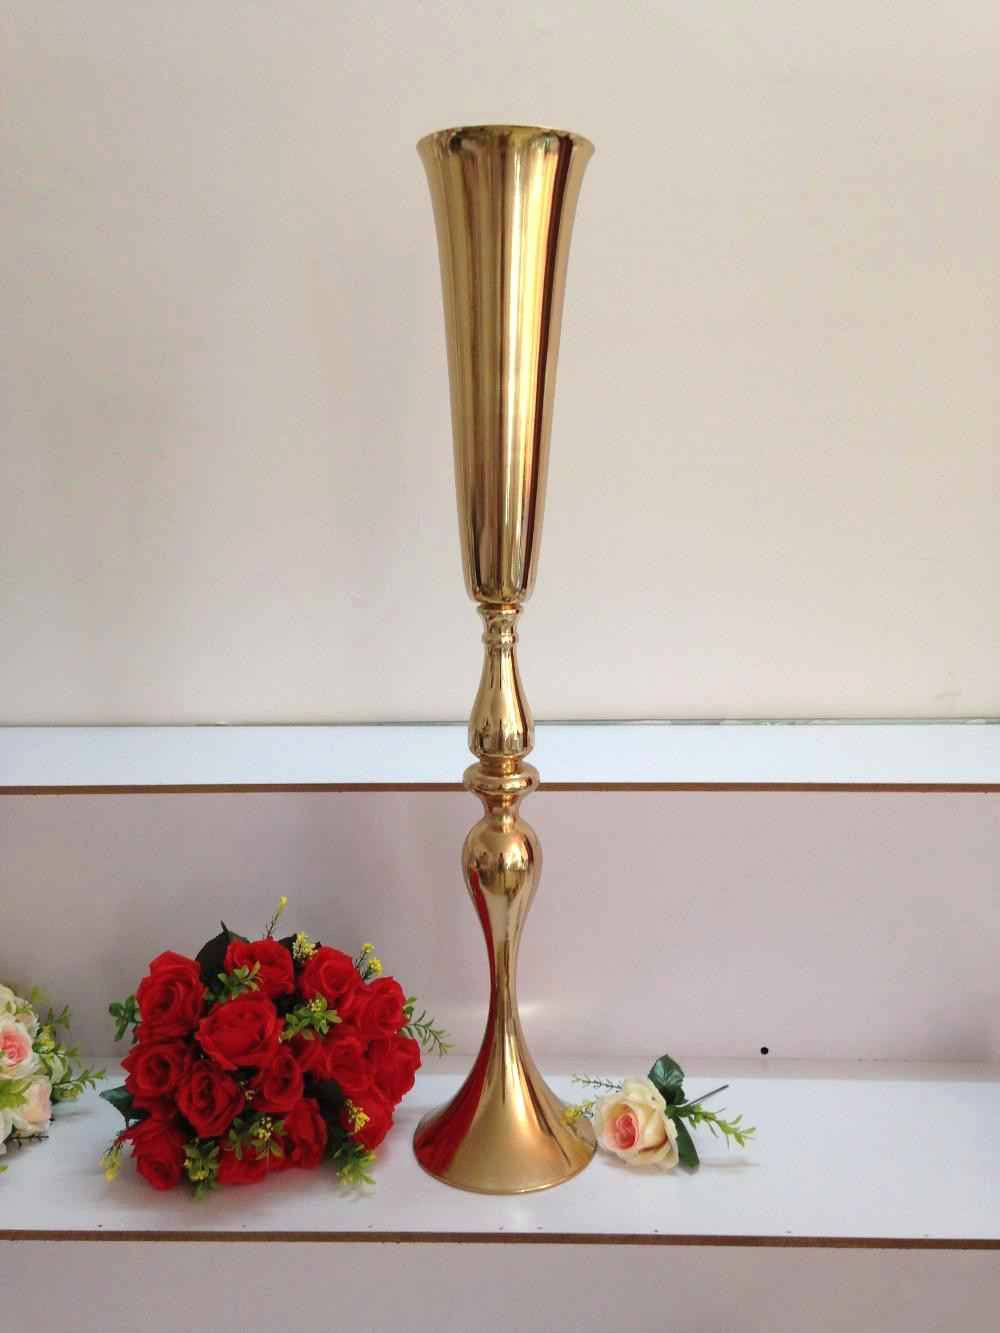 where to buy tall cylinder vases of bulk candles for wedding unique faux crystal candle holders alive with bulk candles for wedding unique faux crystal candle holders alive vases gold tall jpgi 0d cheap in